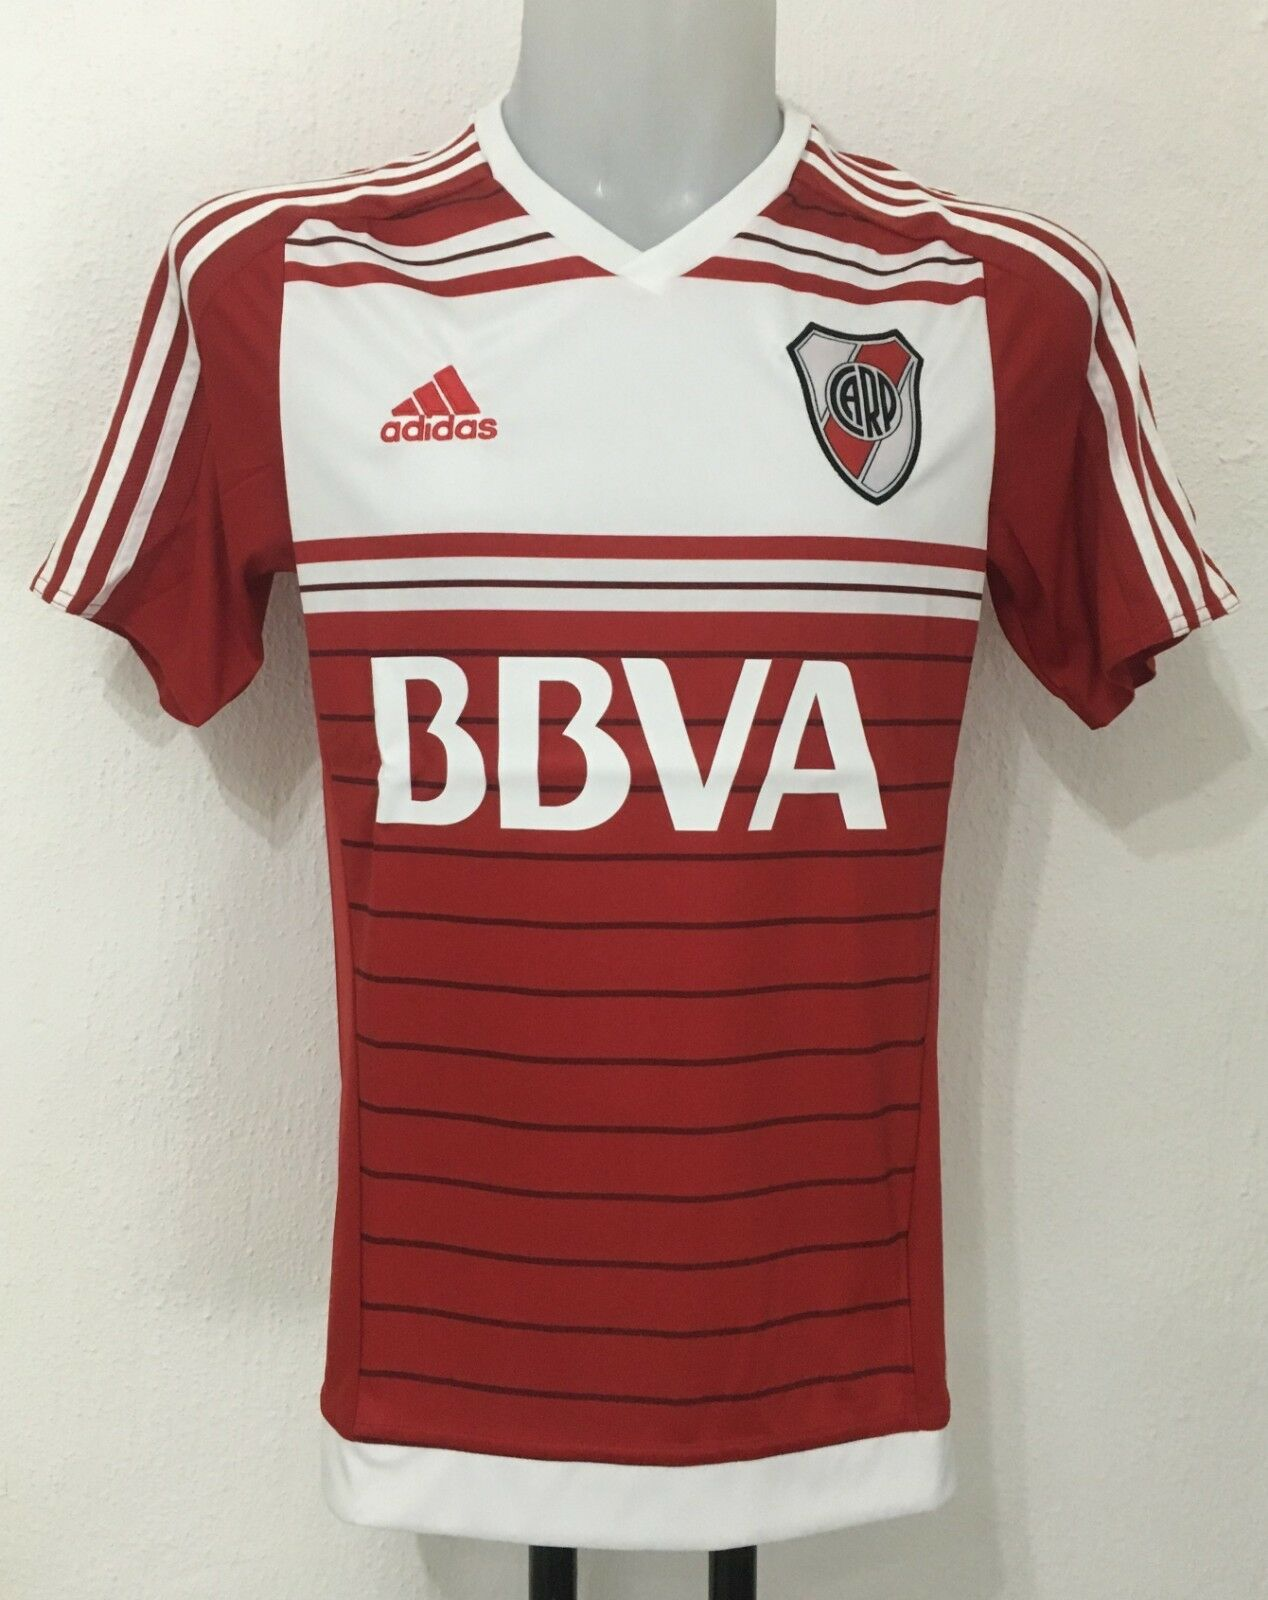 RIVER PLATE 2015 17 S S AWAY SHIRT BY ADIDAS SIZE MEN'S LARGE BRAND NEW